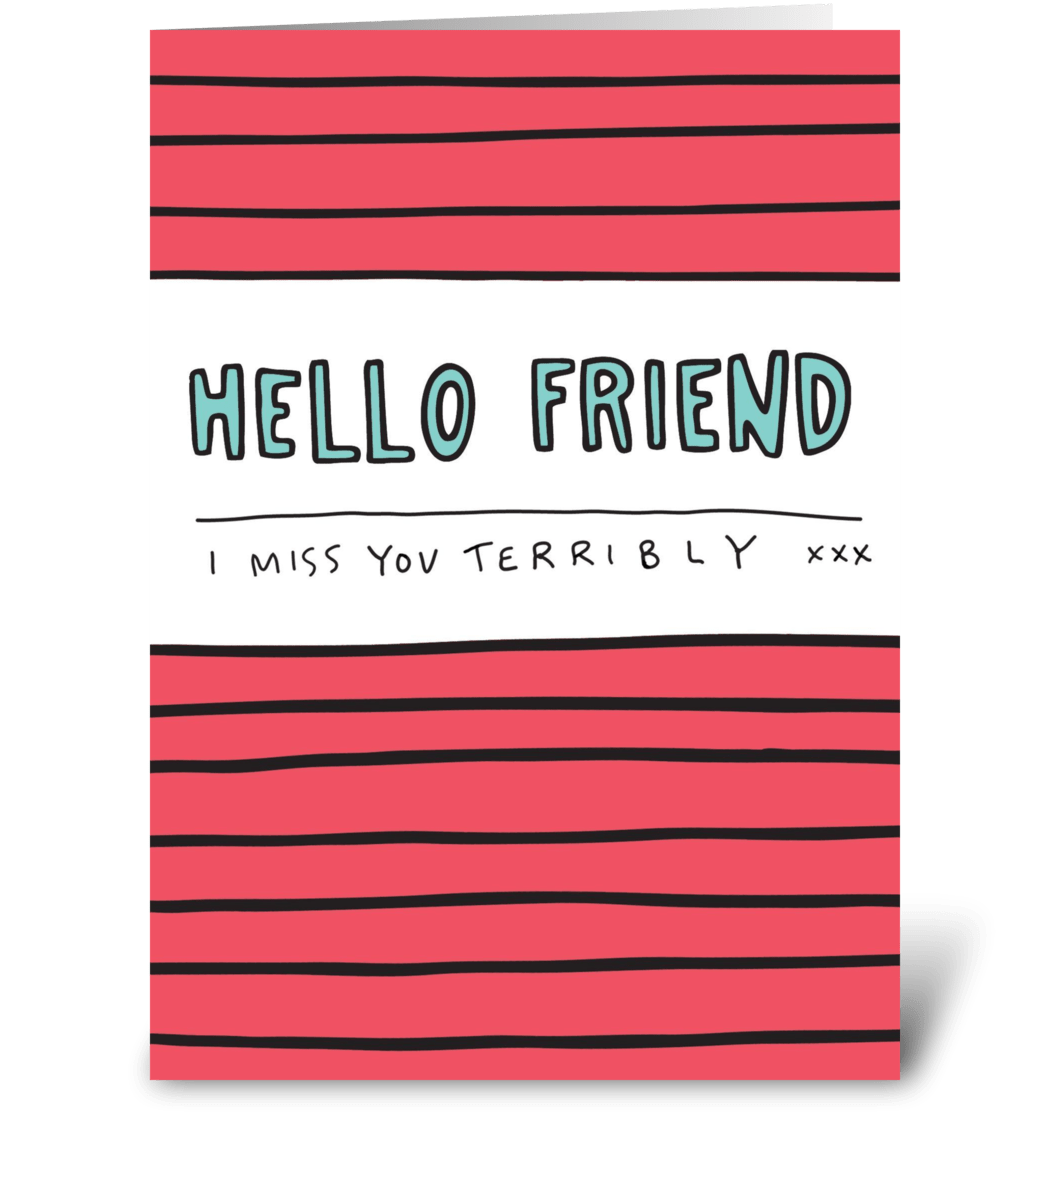 Hello Friend I Miss You Terribly Send This Greeting Card Designed By Angela Chick Card Gnome